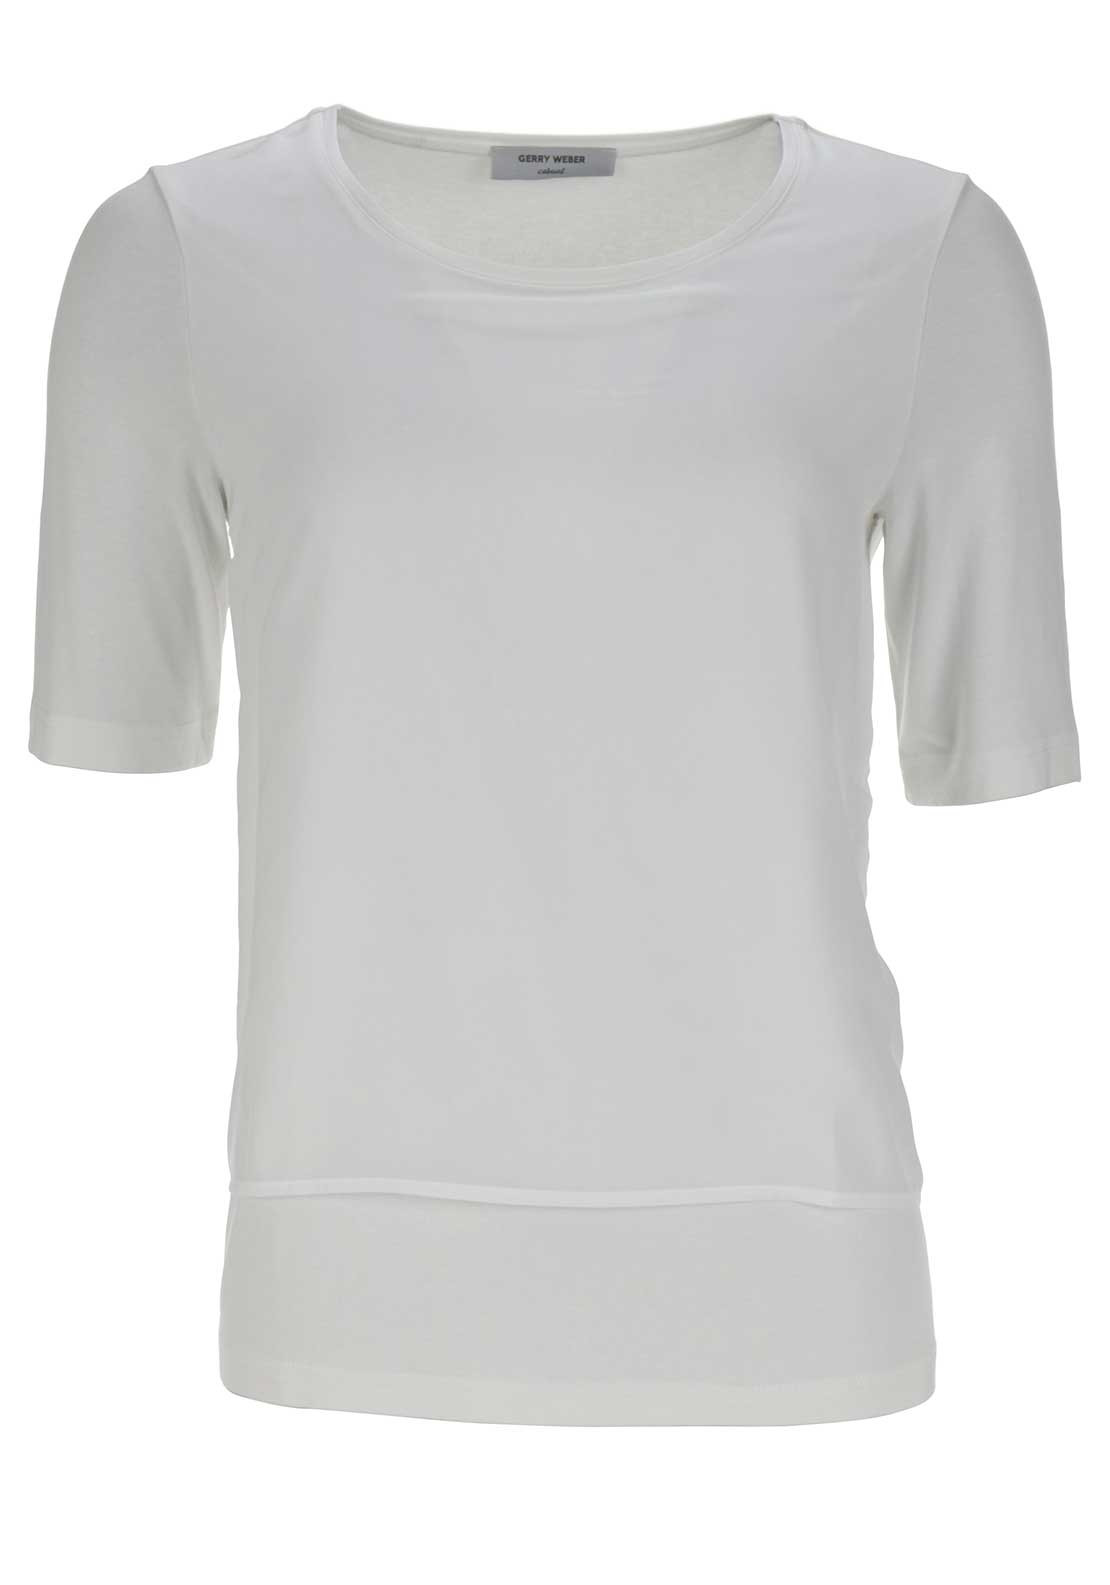 Gerry Weber Chiffon Overlay Short Sleeve Jersey Top, White